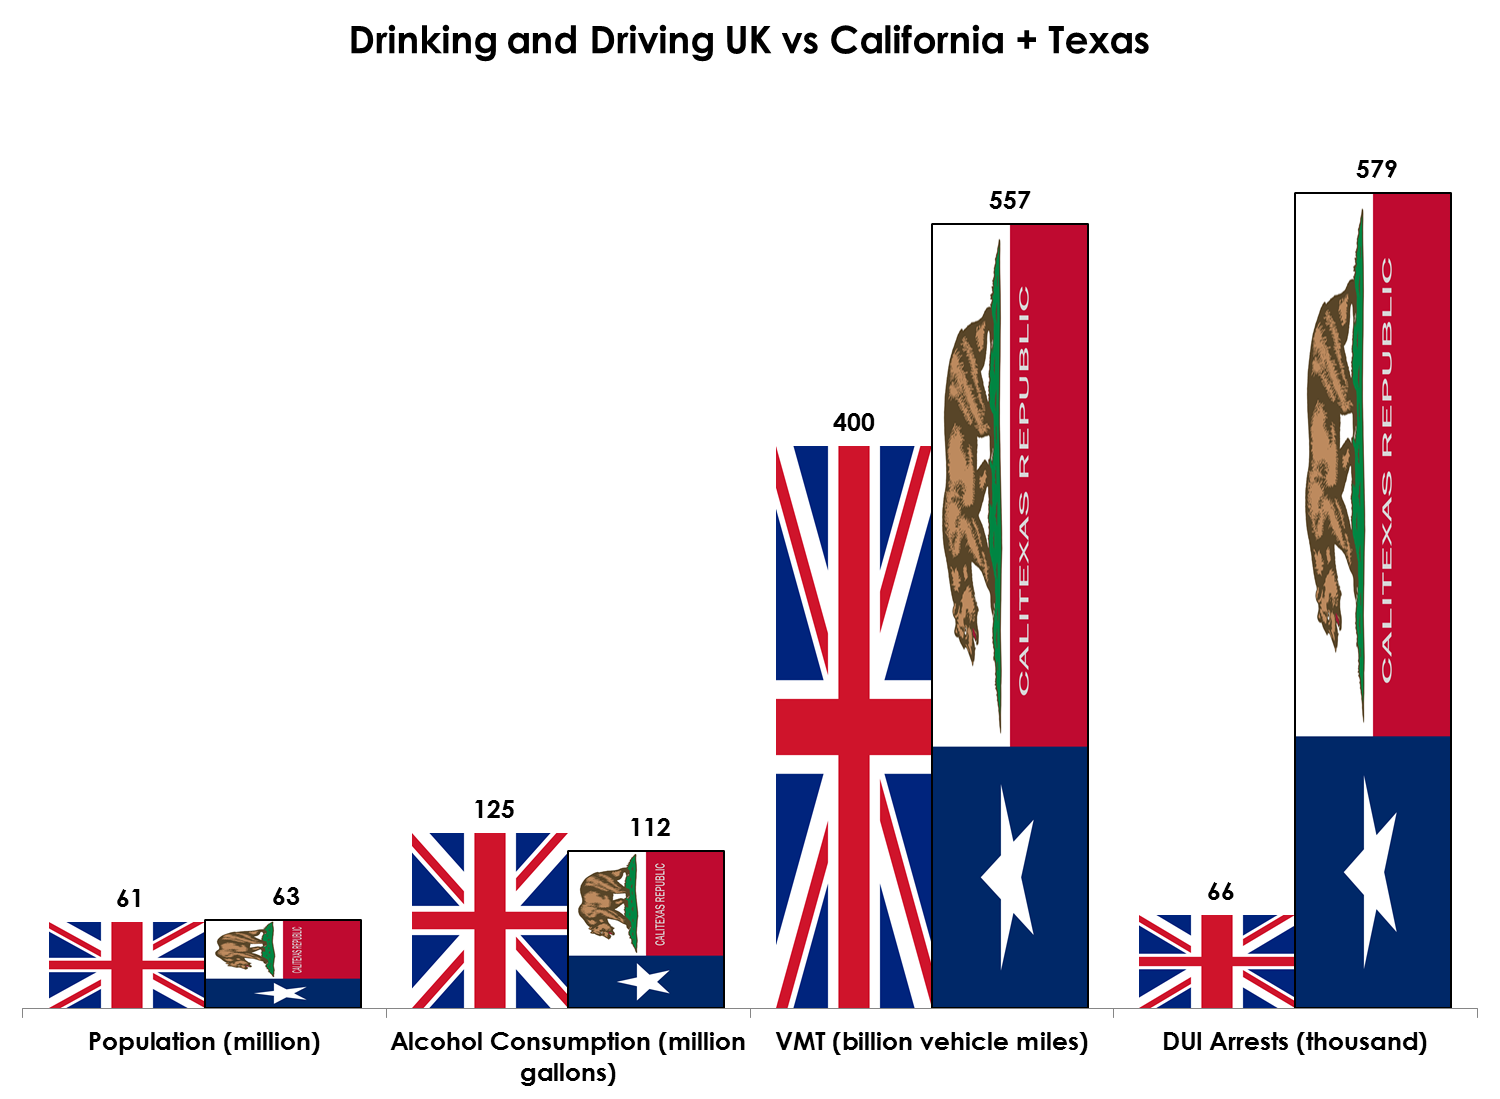 data sources: health and social care information centre, drinkdriving.org.   As an added bonus I just invented a flag for the off chance that Texas and California secede from the Union and merge into a separate republic. You're welcome.